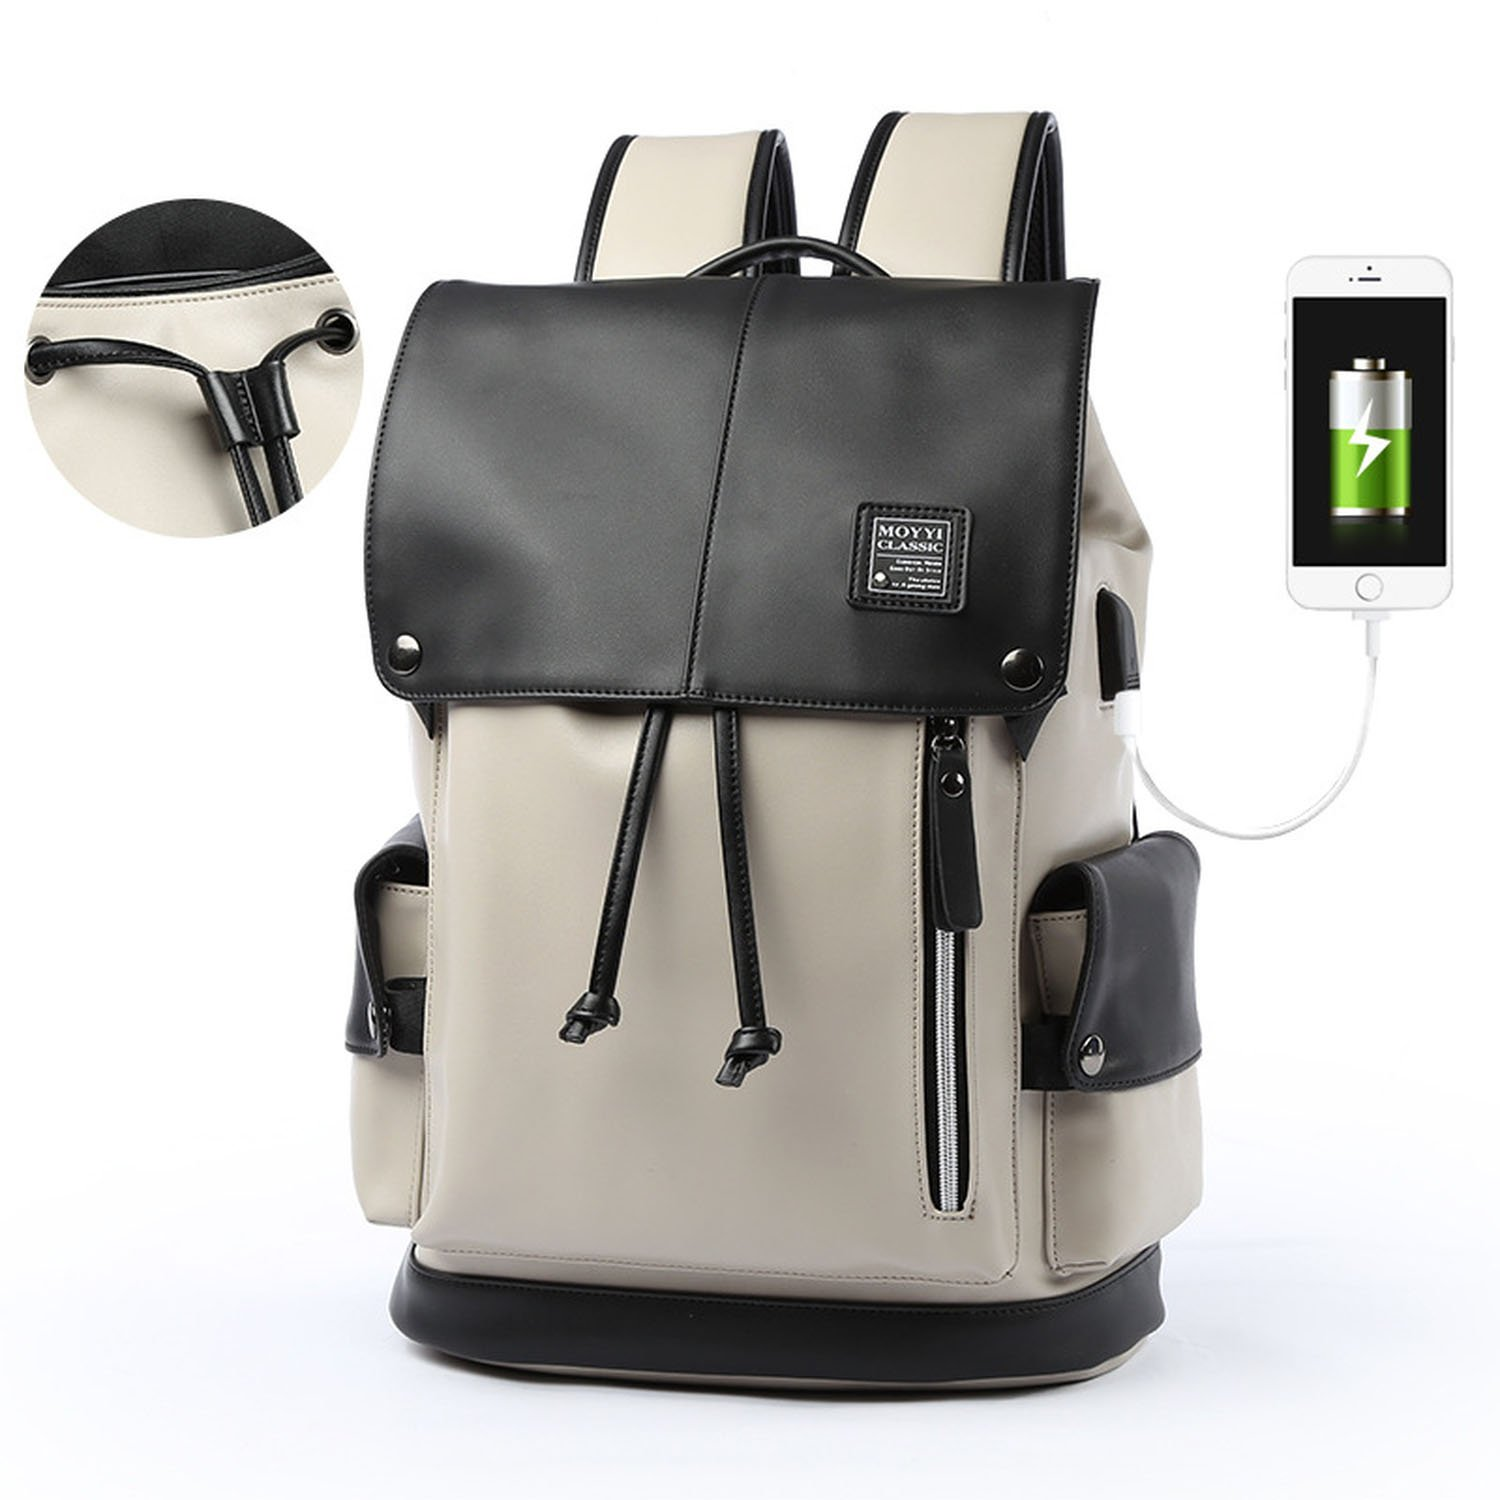 Laptop Backpack Water Resistant Business Travel Computer Bag for 14-Inches Laptops,Black and white Drawstring charging